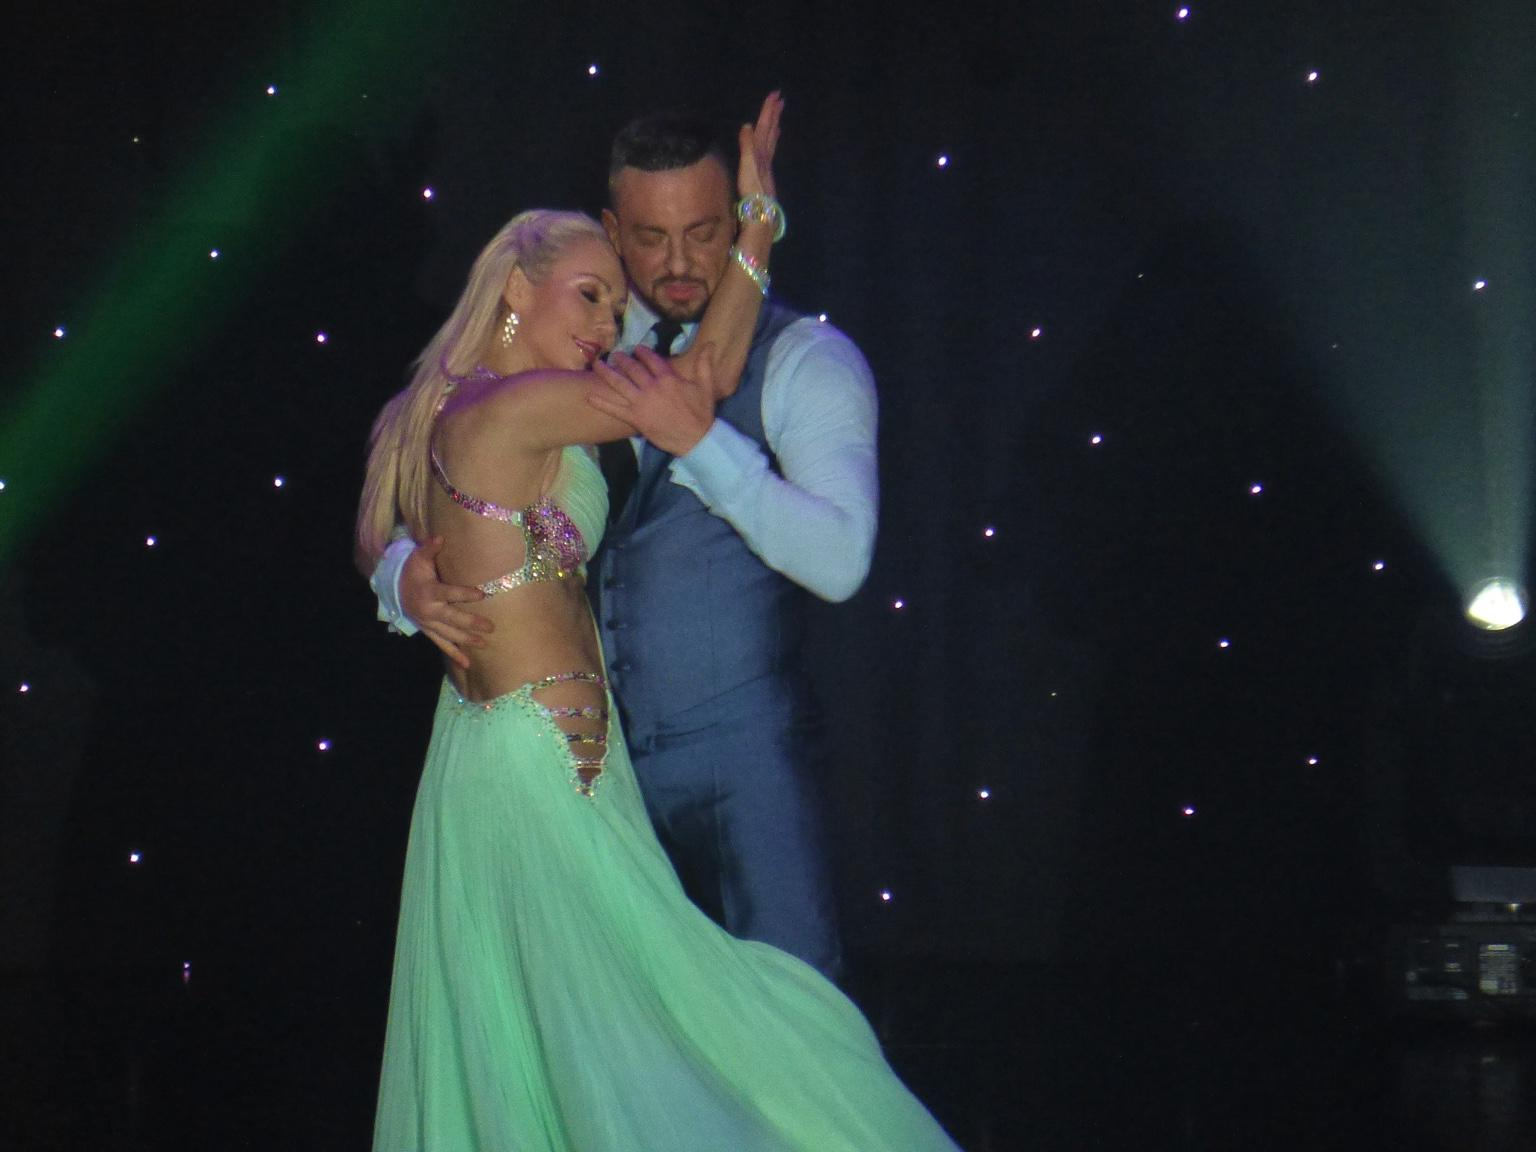 RT @Richardbbc: @KRihanoff and @Robinwindsor were feeling good on @pandocruises Azura http://t.co/Ht8b7faNYm